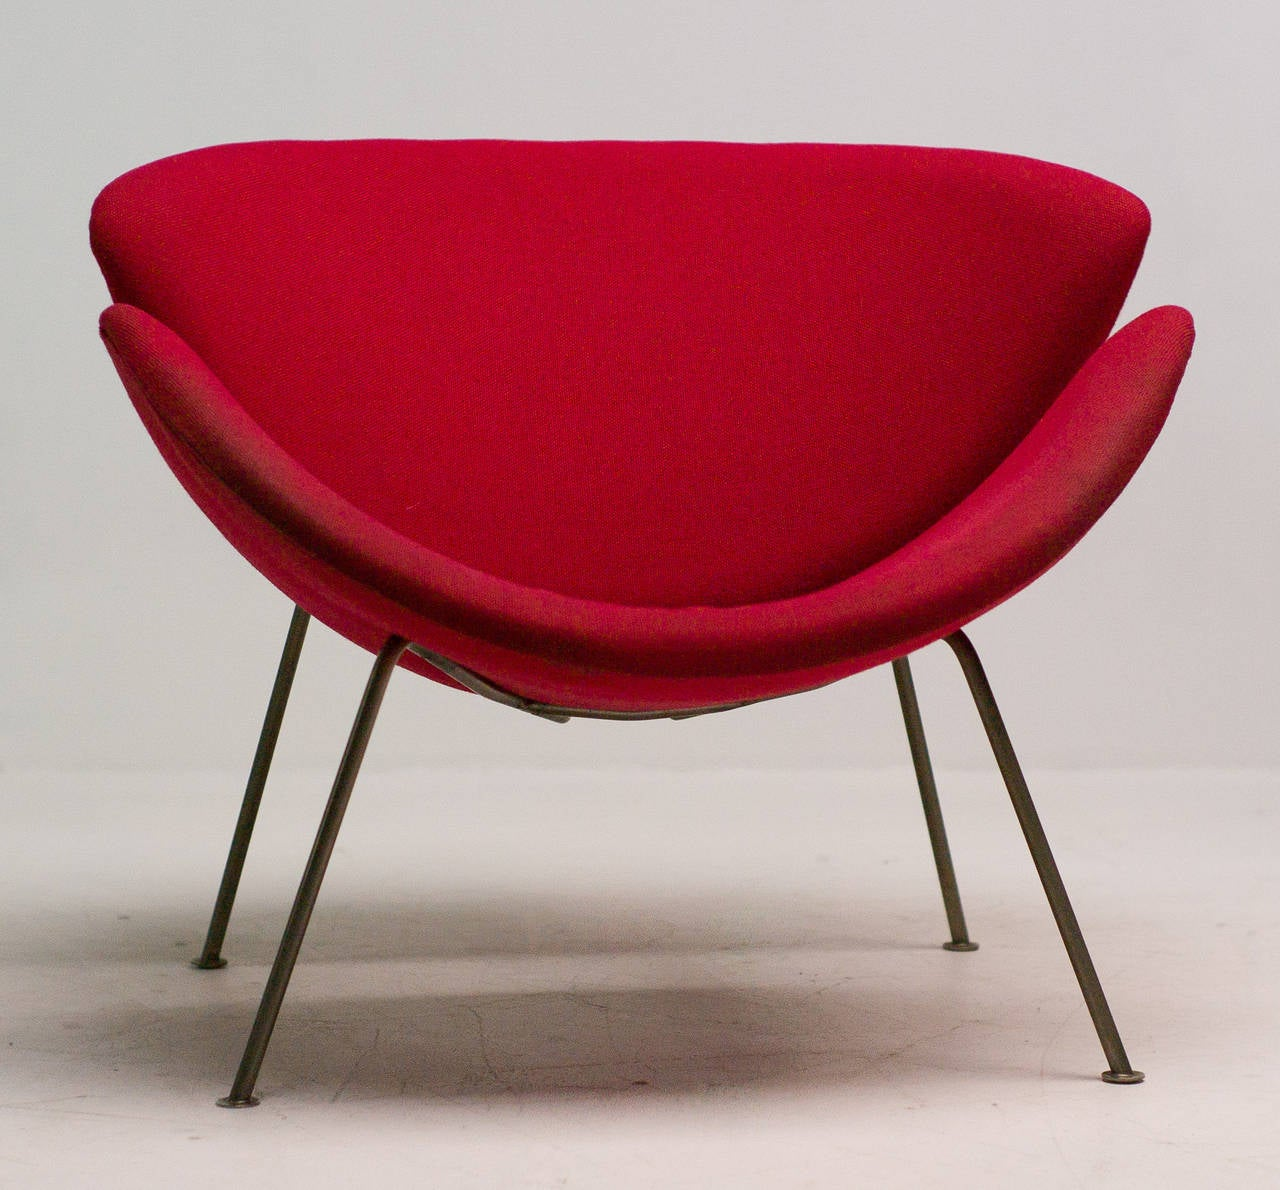 orange slice chair design revolving original early by pierre paulin for